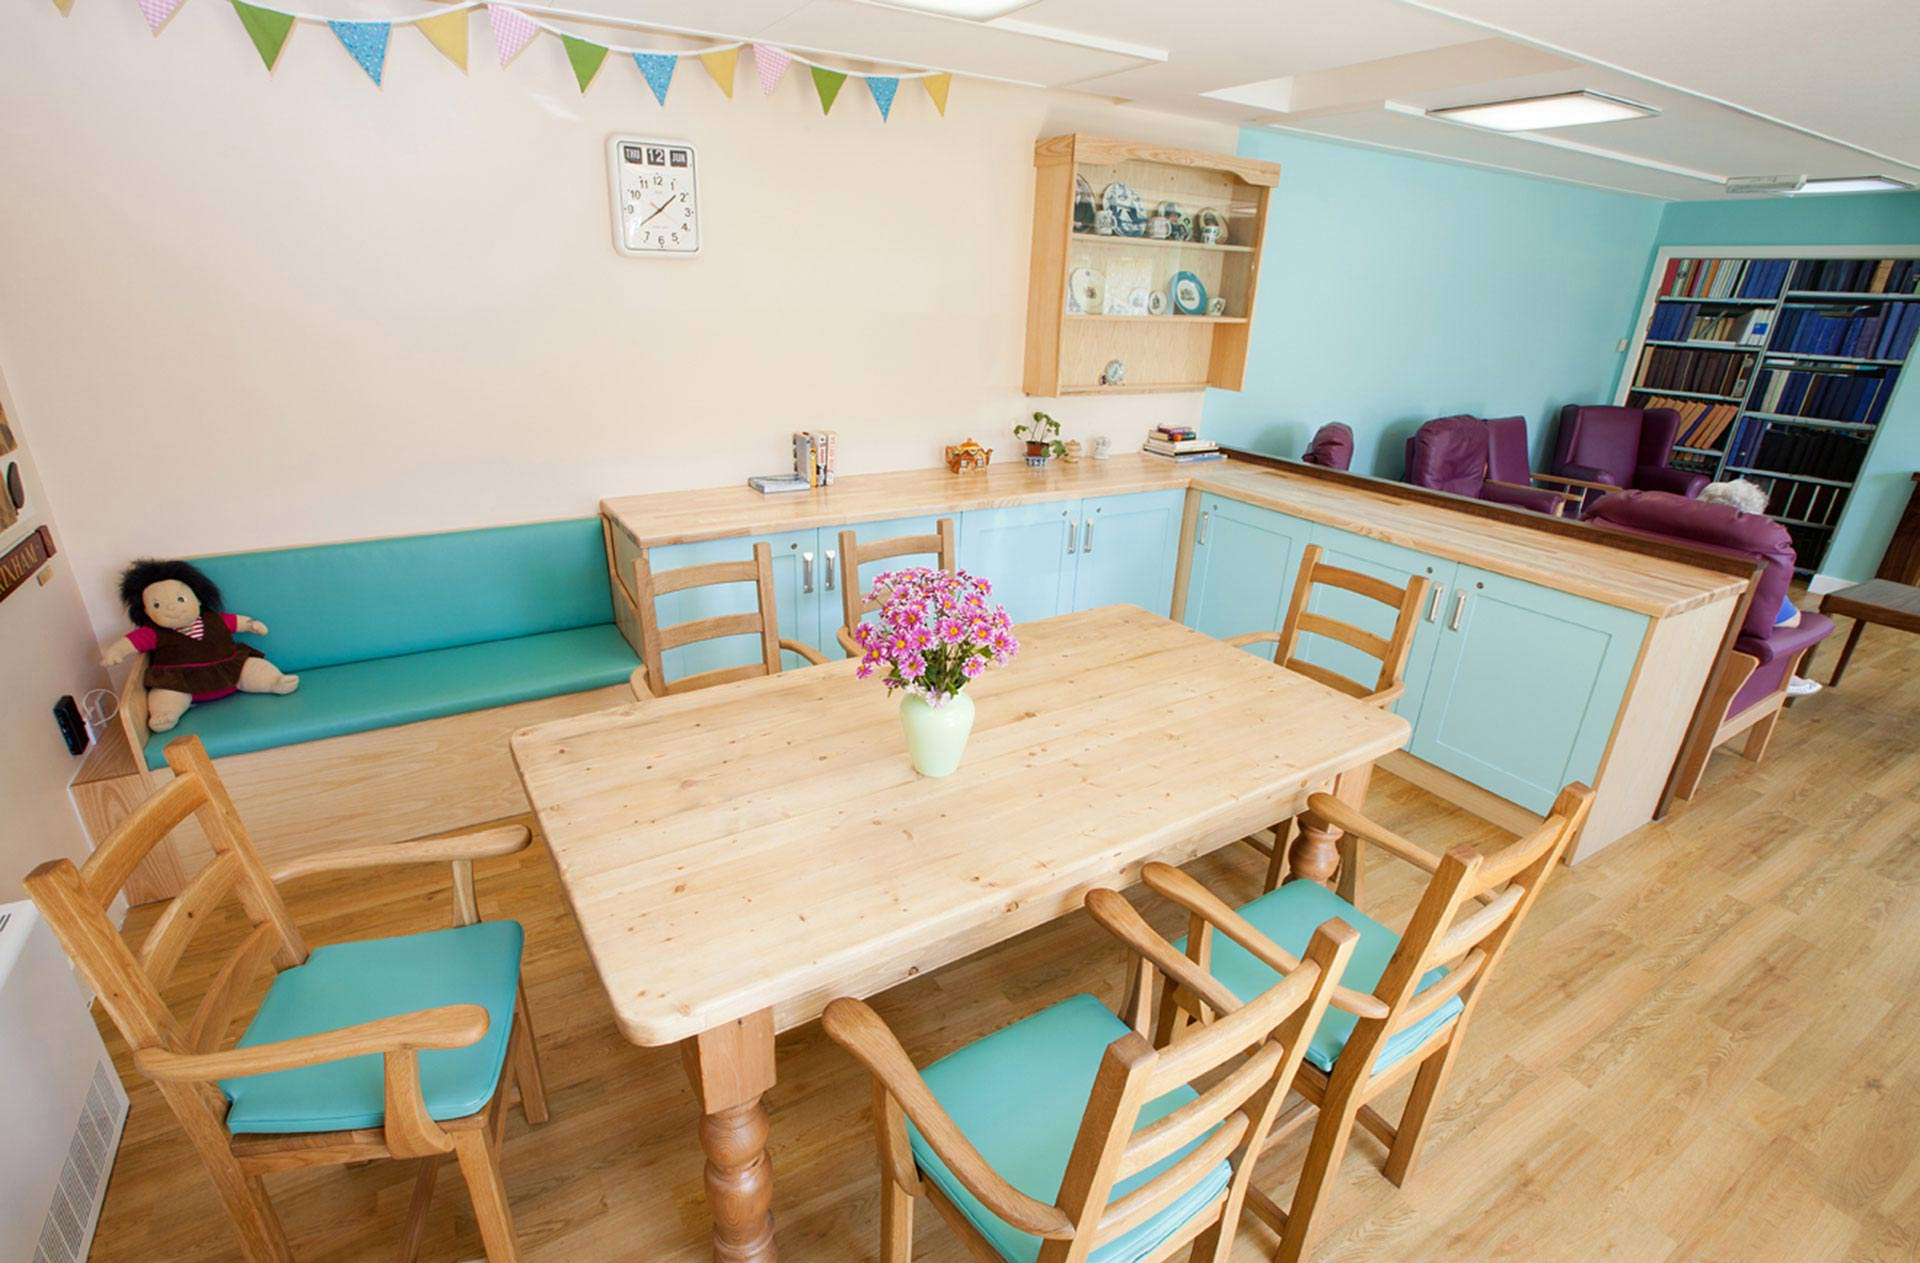 kitchen table provides a domestic living space for dementia ward